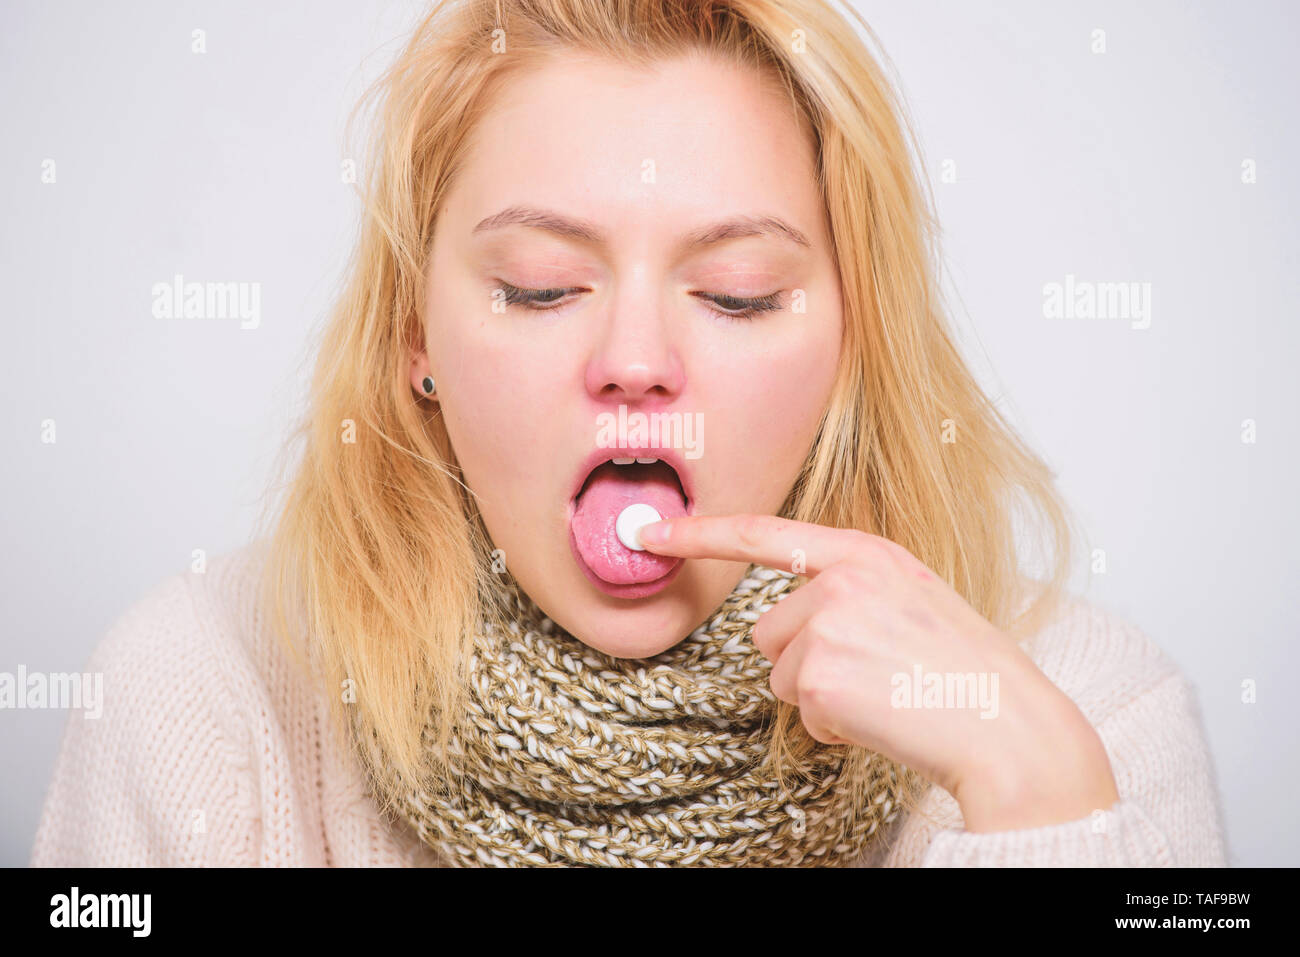 Home treatment concept. Girl take medicine to break fever. Cold flu and sore throat. Bitter pill to swallow. Headache and Take tablet relieve fever. fever remedies. Woman sick person hold tablet. - Stock Image